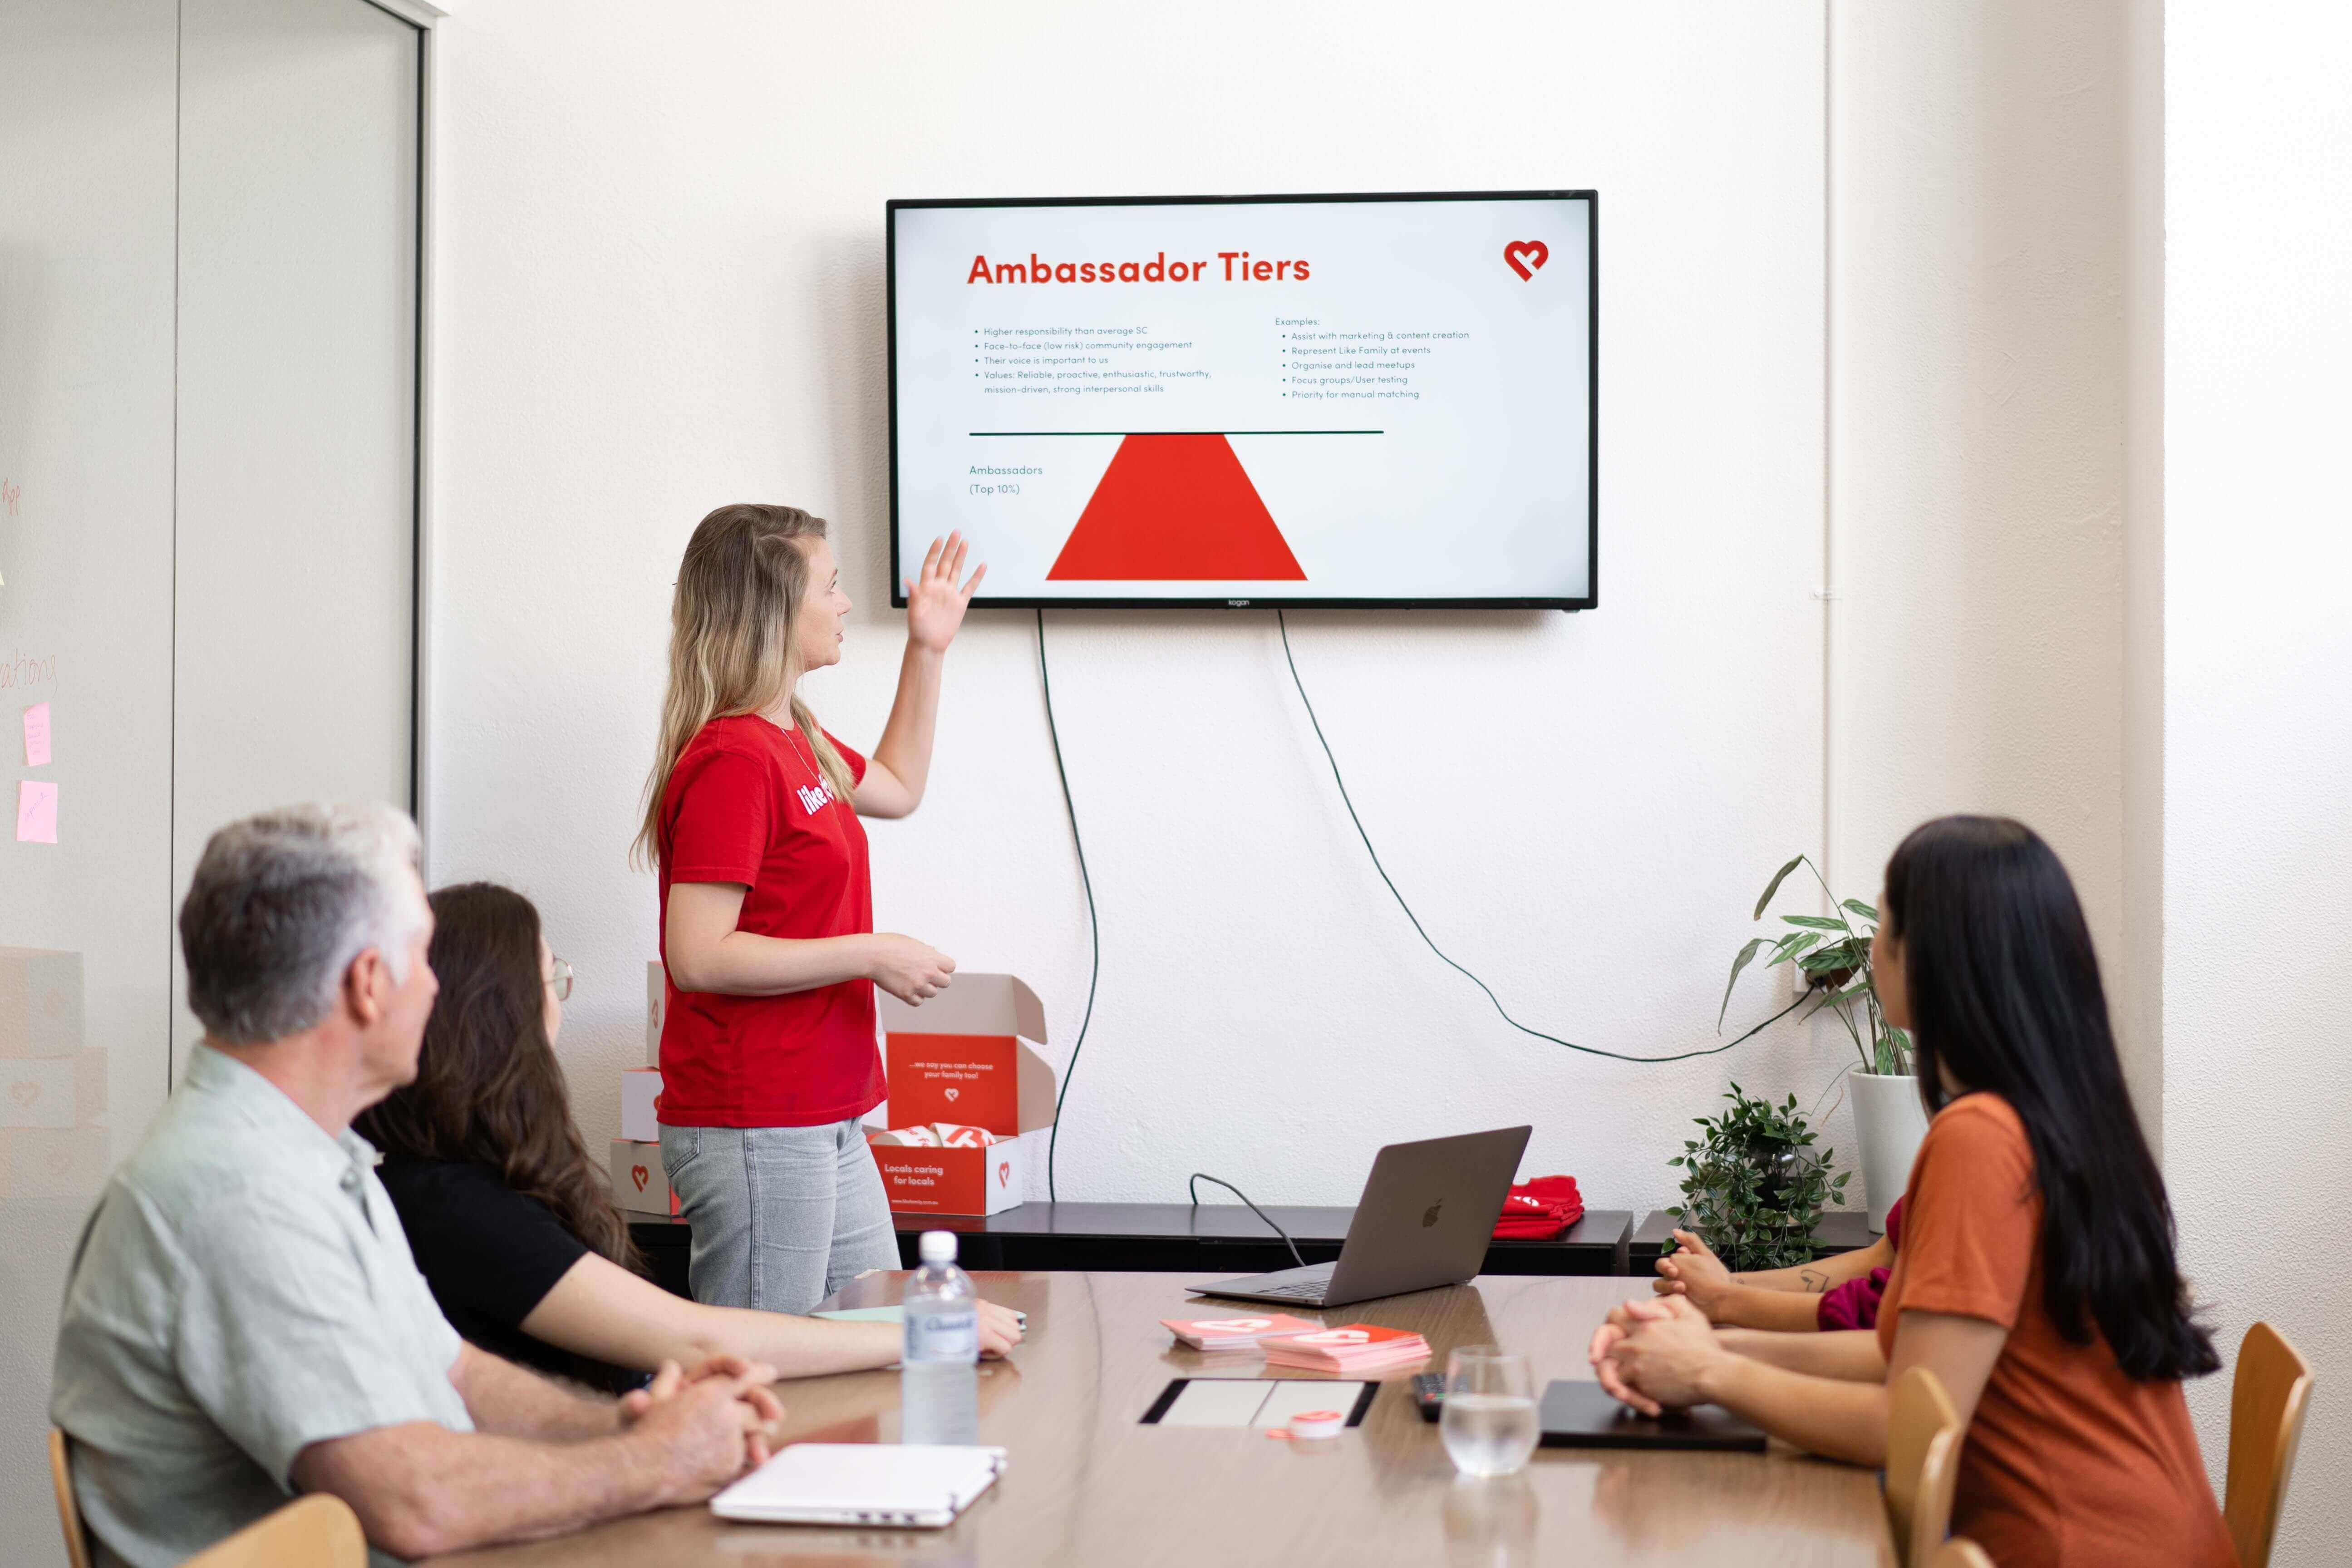 A woman pointing at a presentation in a board room while a group of people look on.